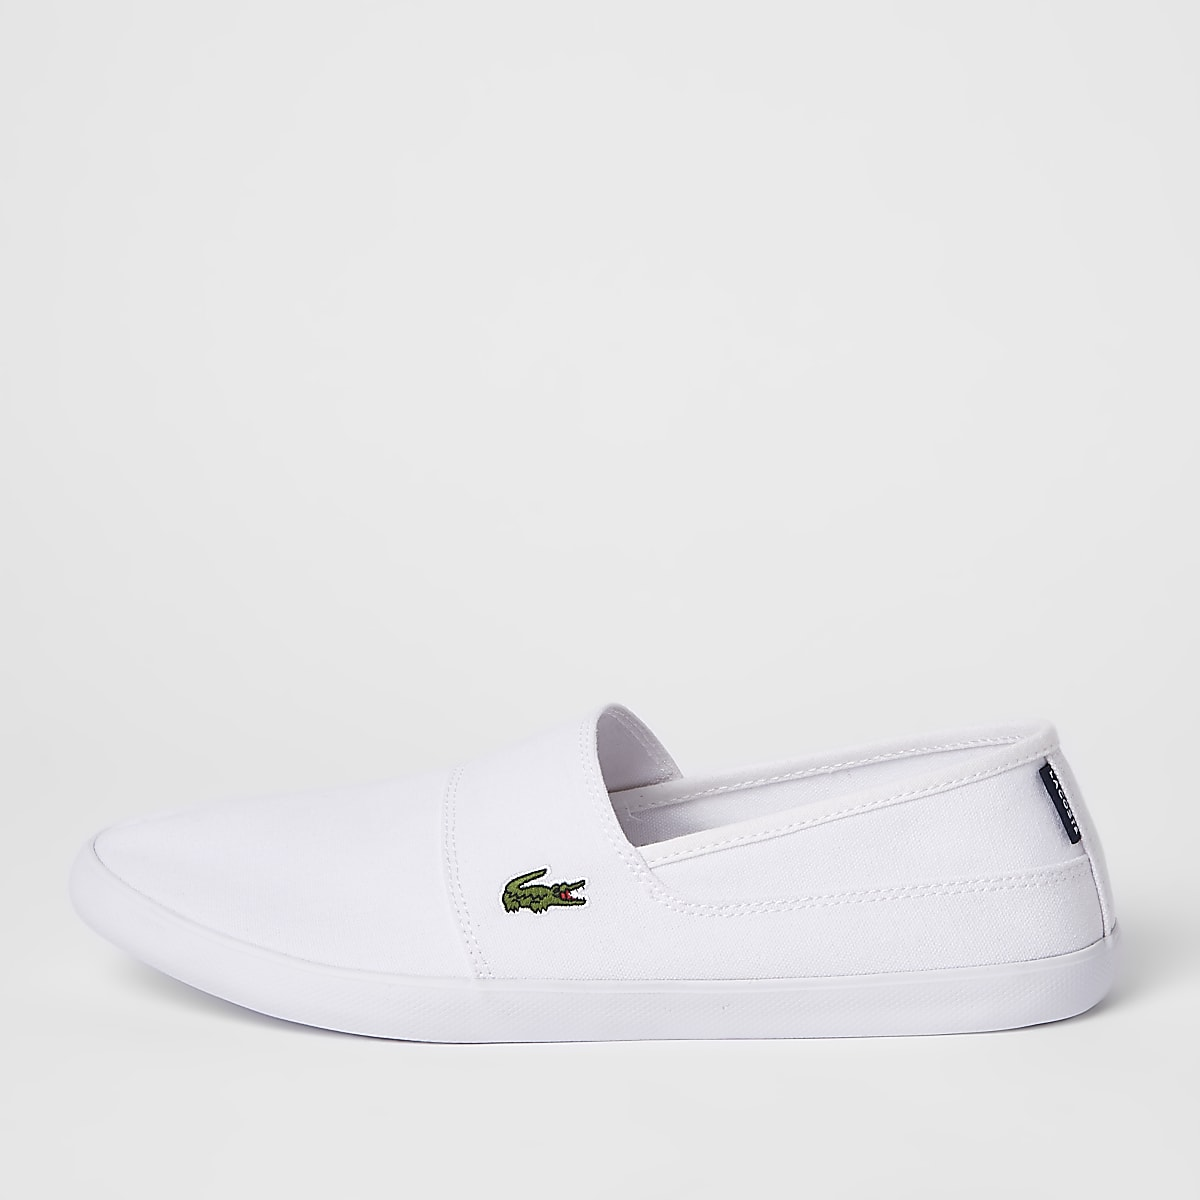 Lacoste white slip on trainers